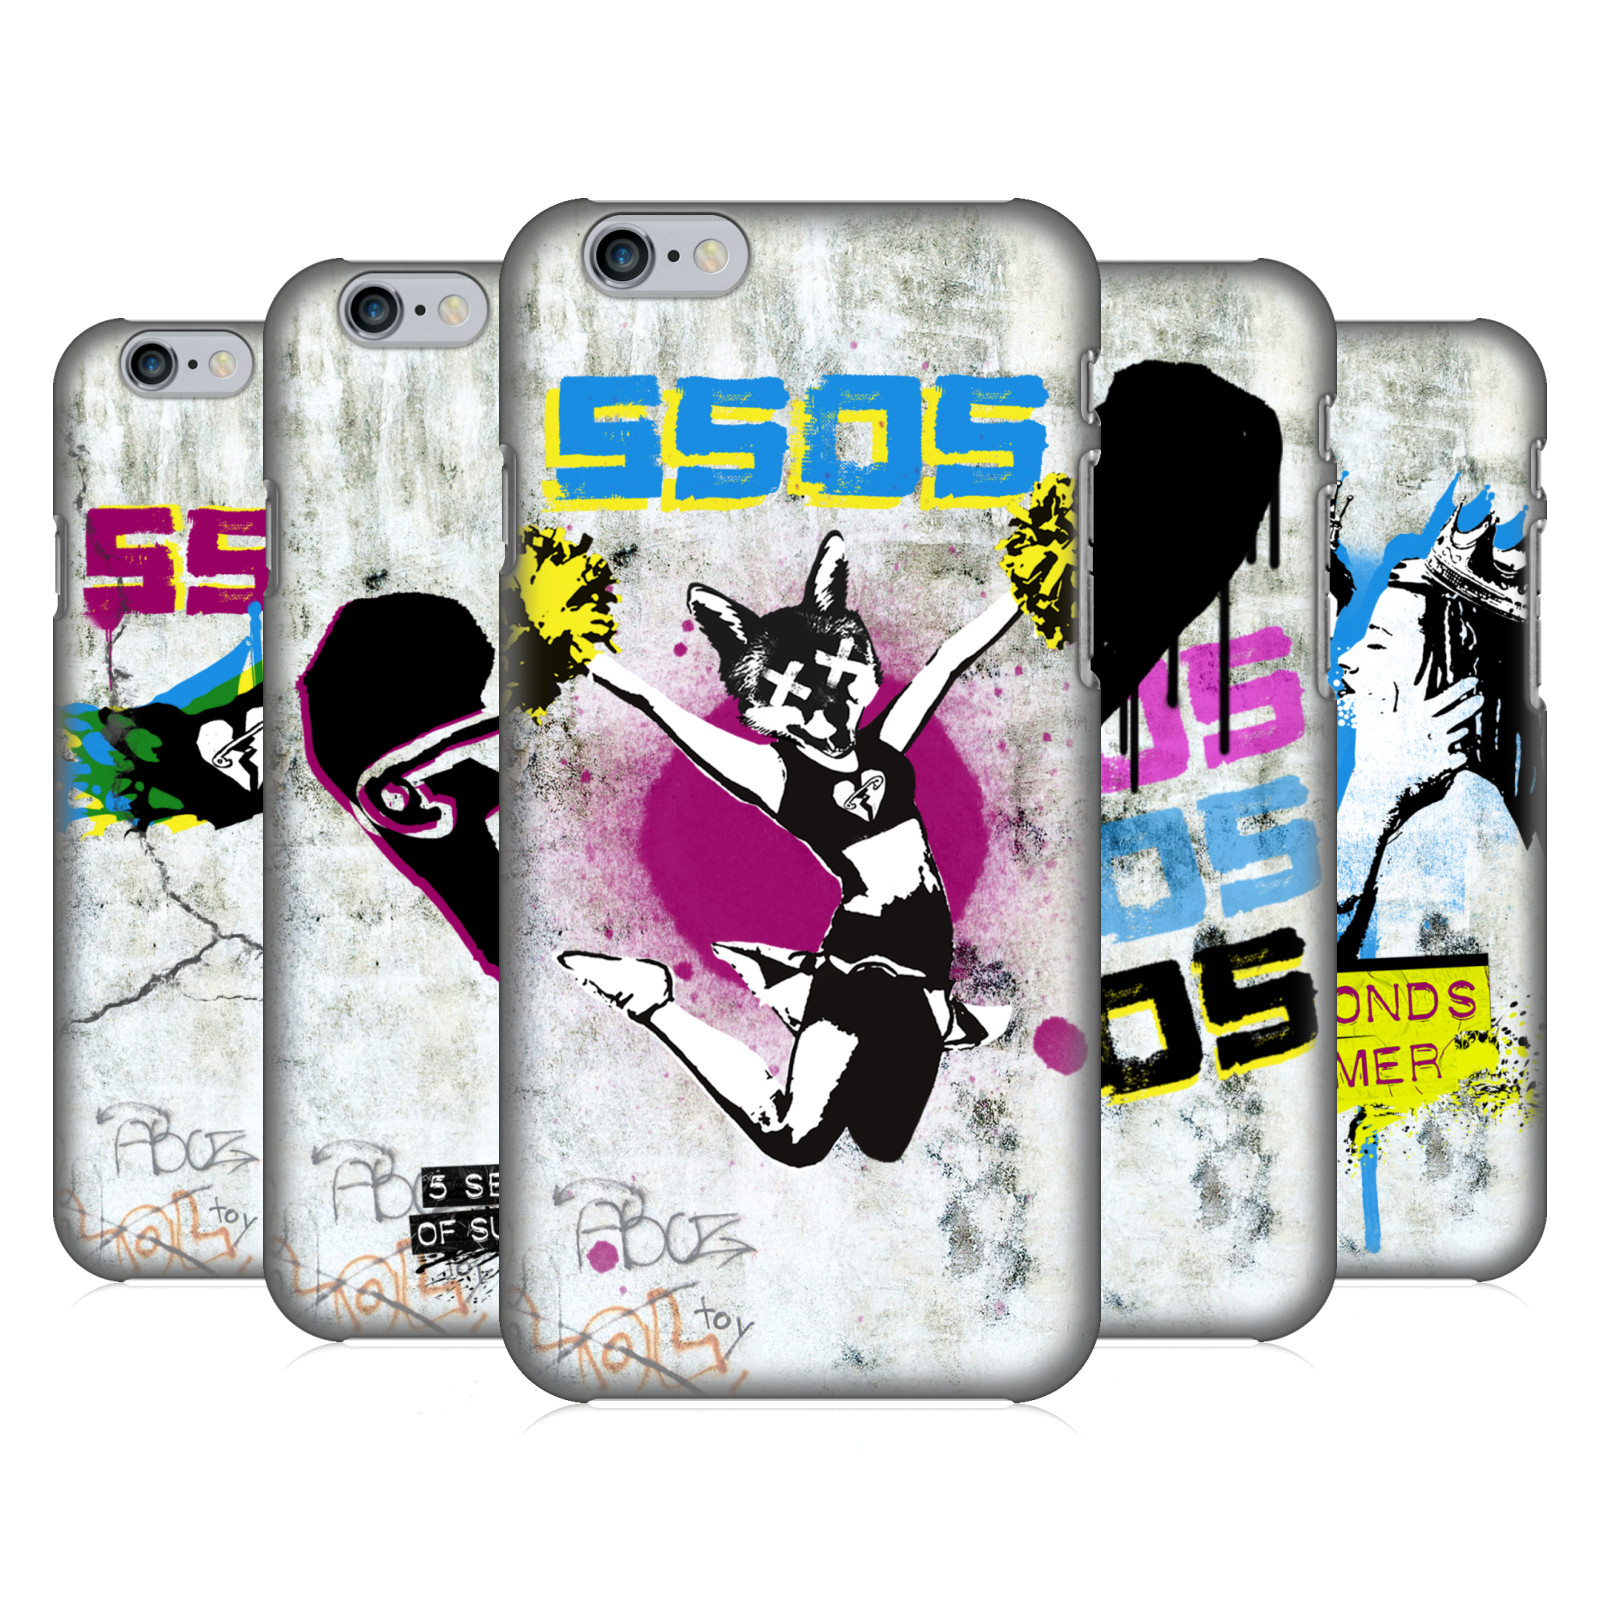 5 Seconds of Summer 5SOS Graffiti